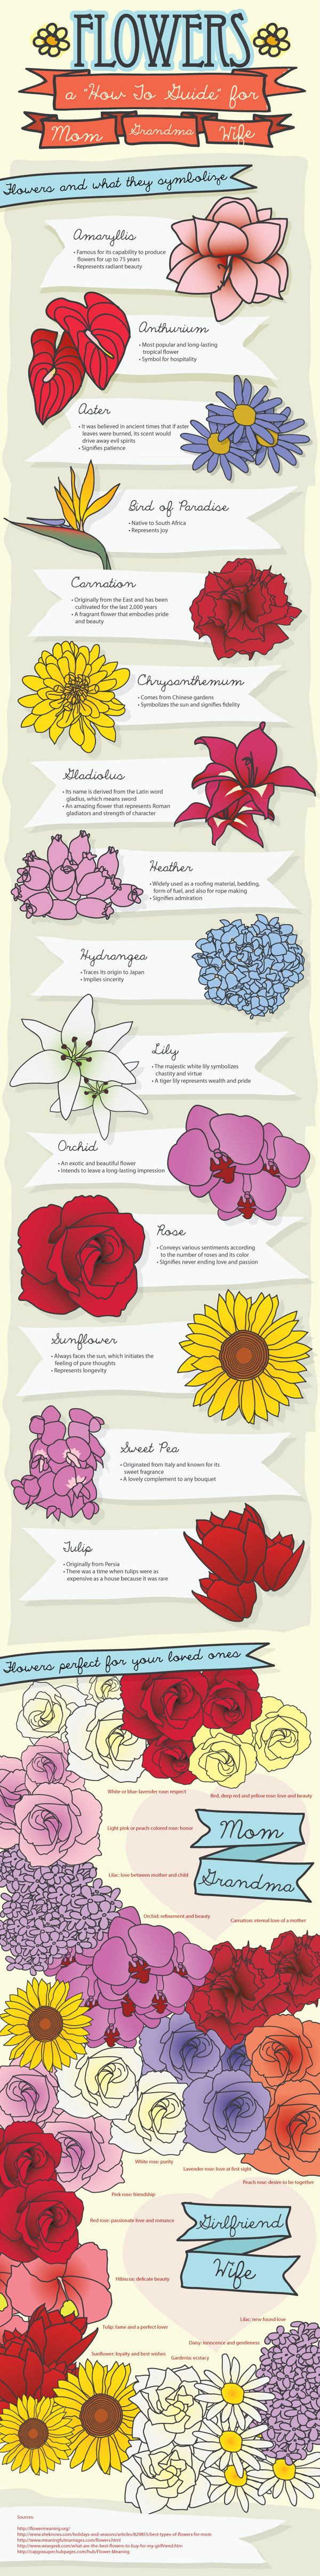 Finally, a chart that shows me the meaning behind the flowers I get for my mom and wife!